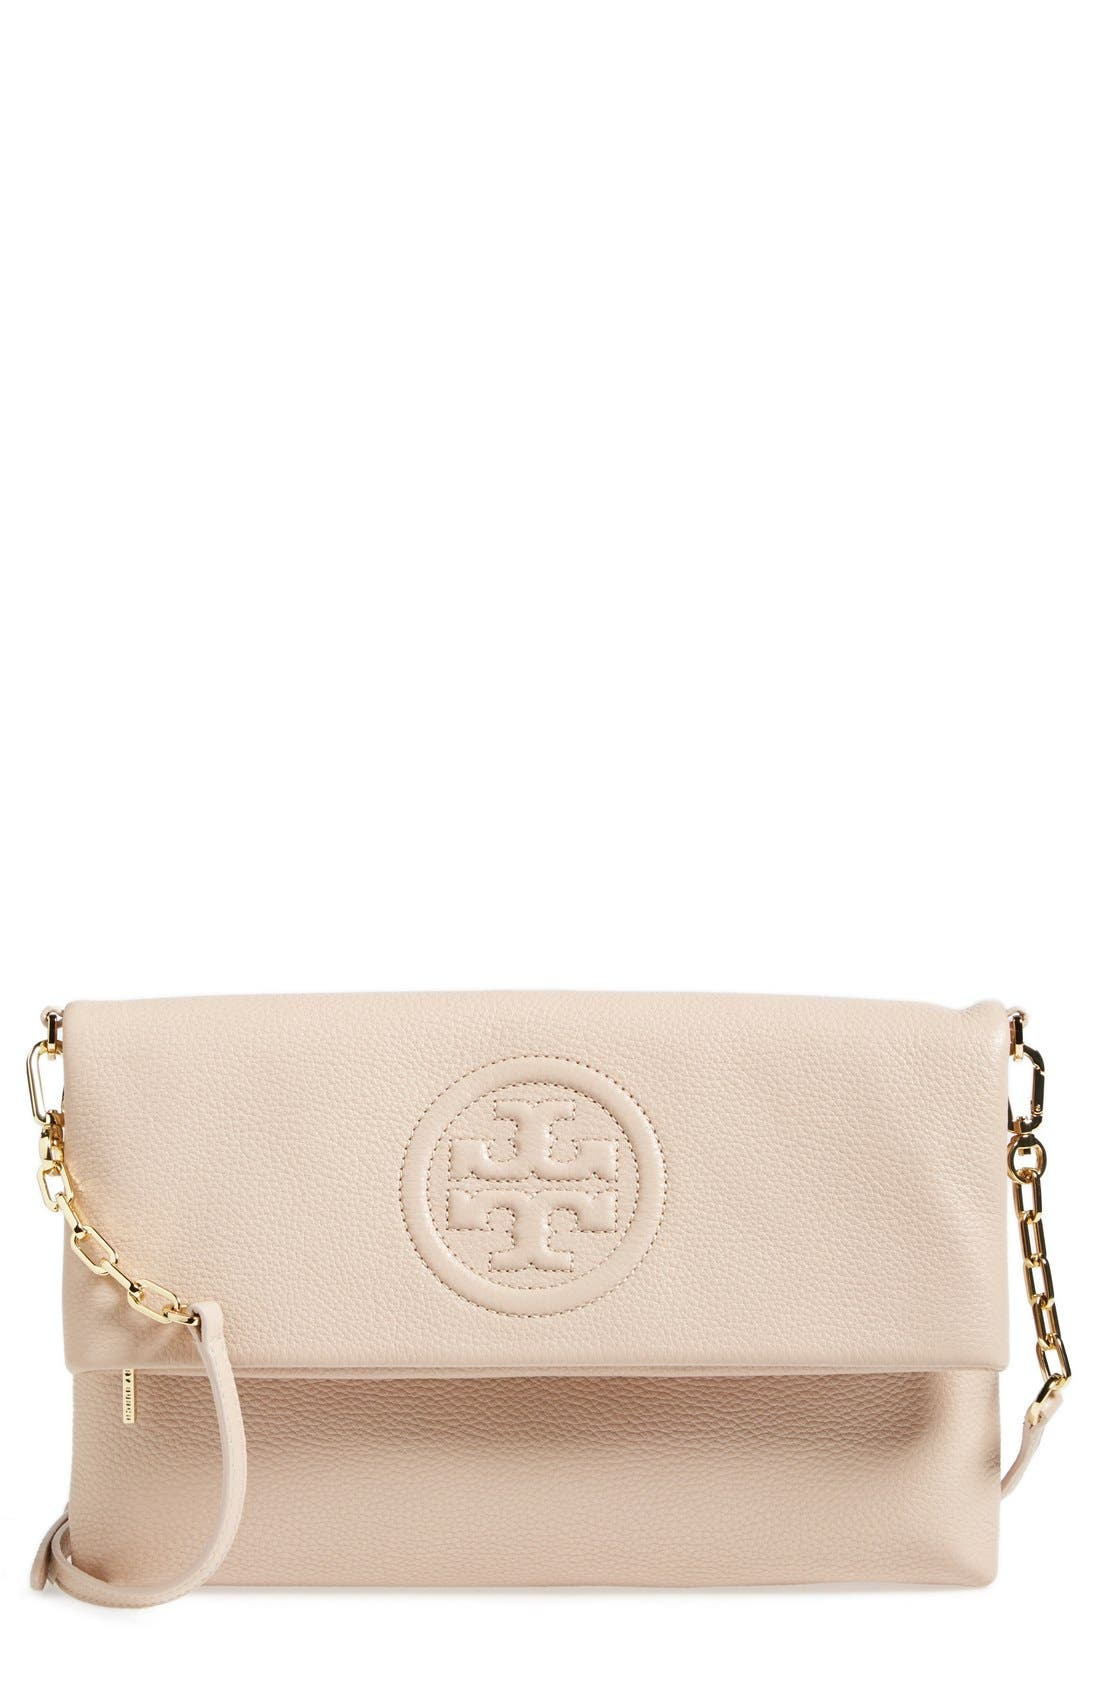 Main Image - Tory Burch 'Bombe' Foldover Clutch